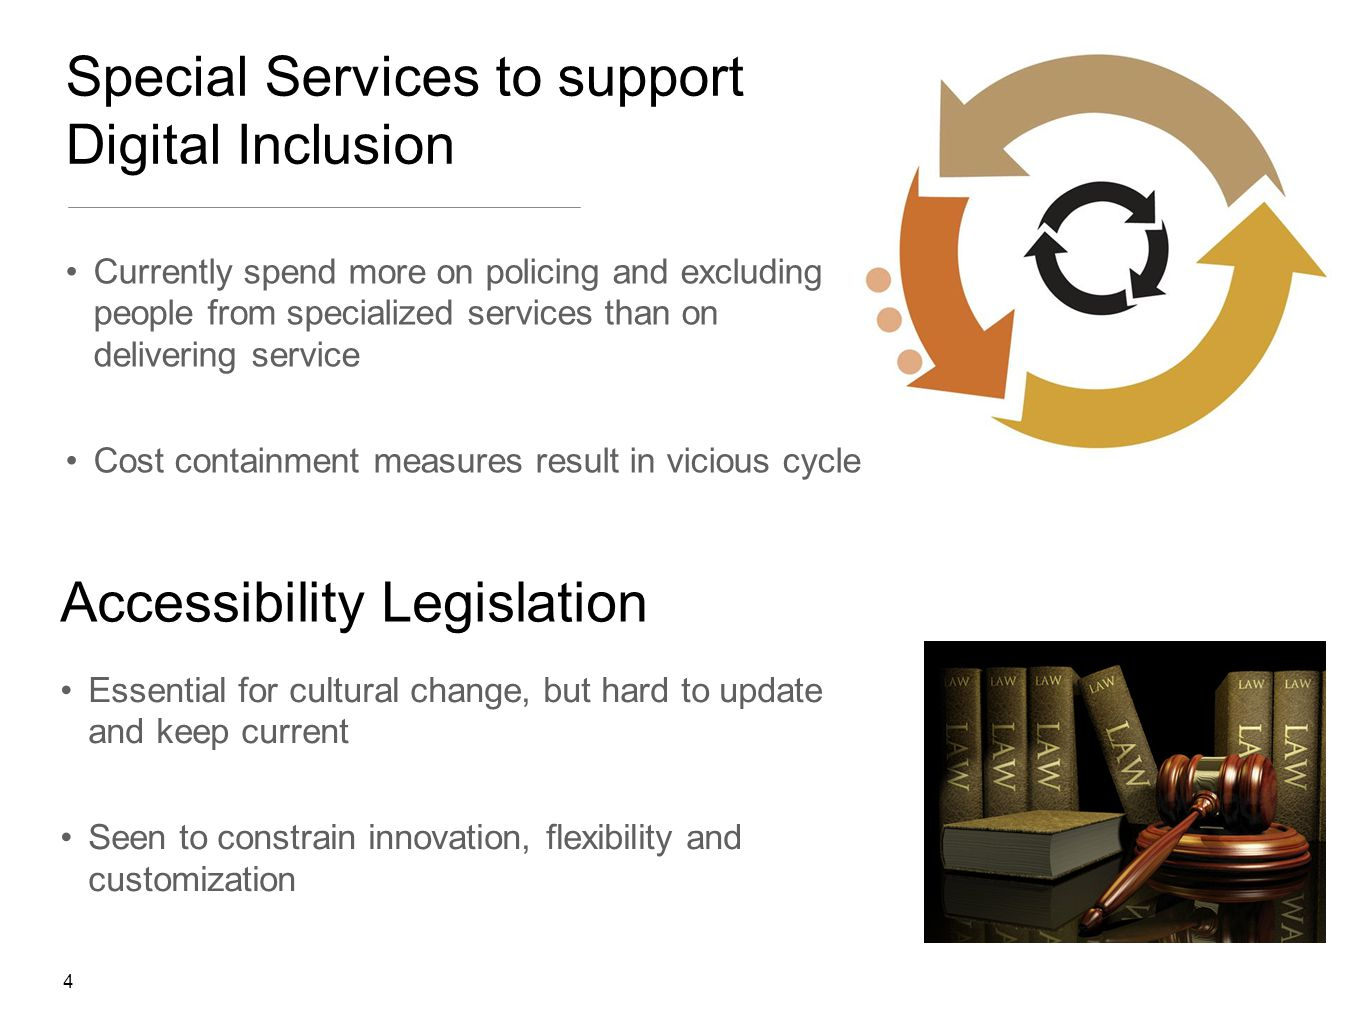 4 Special Services to support Digital Inclusion Currently spend more on policing and excluding people from specialized services than on delivering service Cost containment measures result in vicious cycle Accessibility Legislation Essential for cultural change, but hard to update and keep current Seen to constrain innovation, flexibility and customization